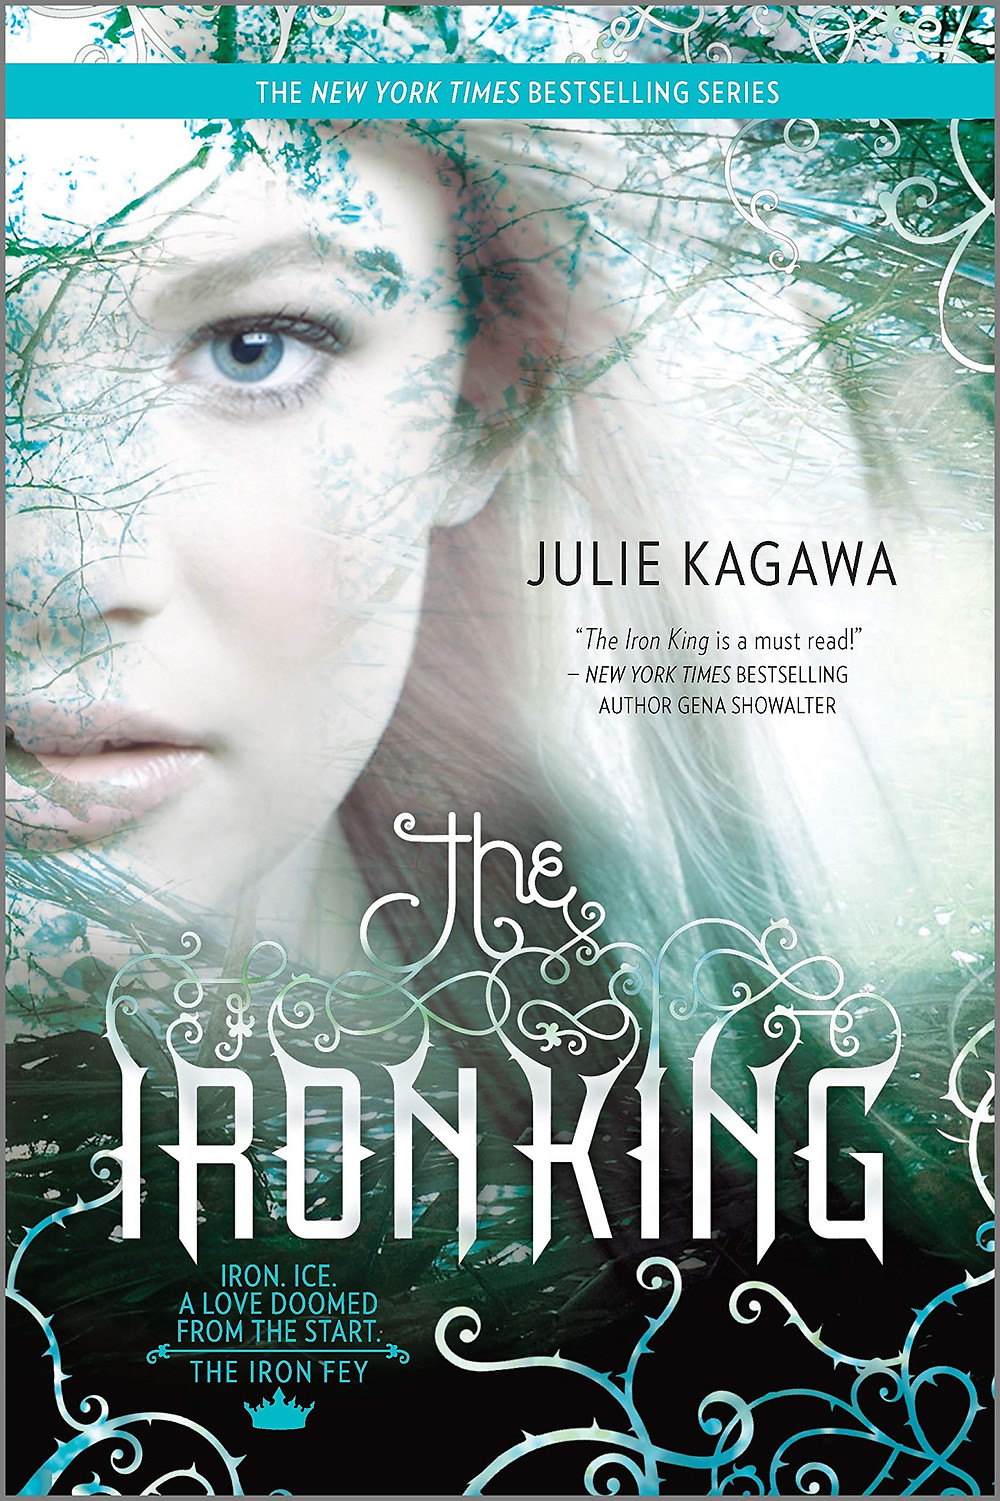 The Iron King by Julie Kagawa must-read winter book